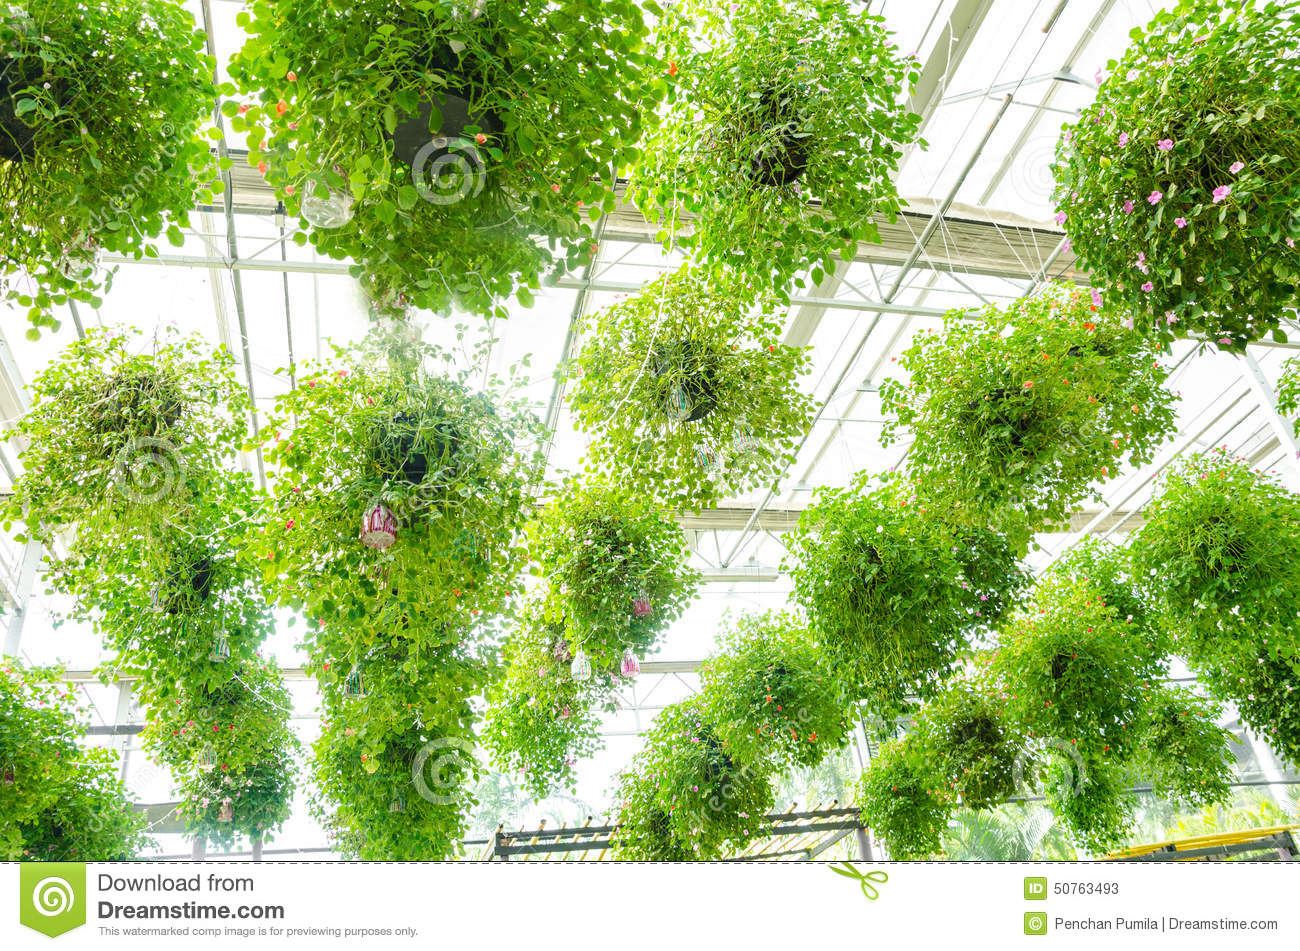 Flower In Pots Hanging On The Roof Stock Image - Image of vase ...